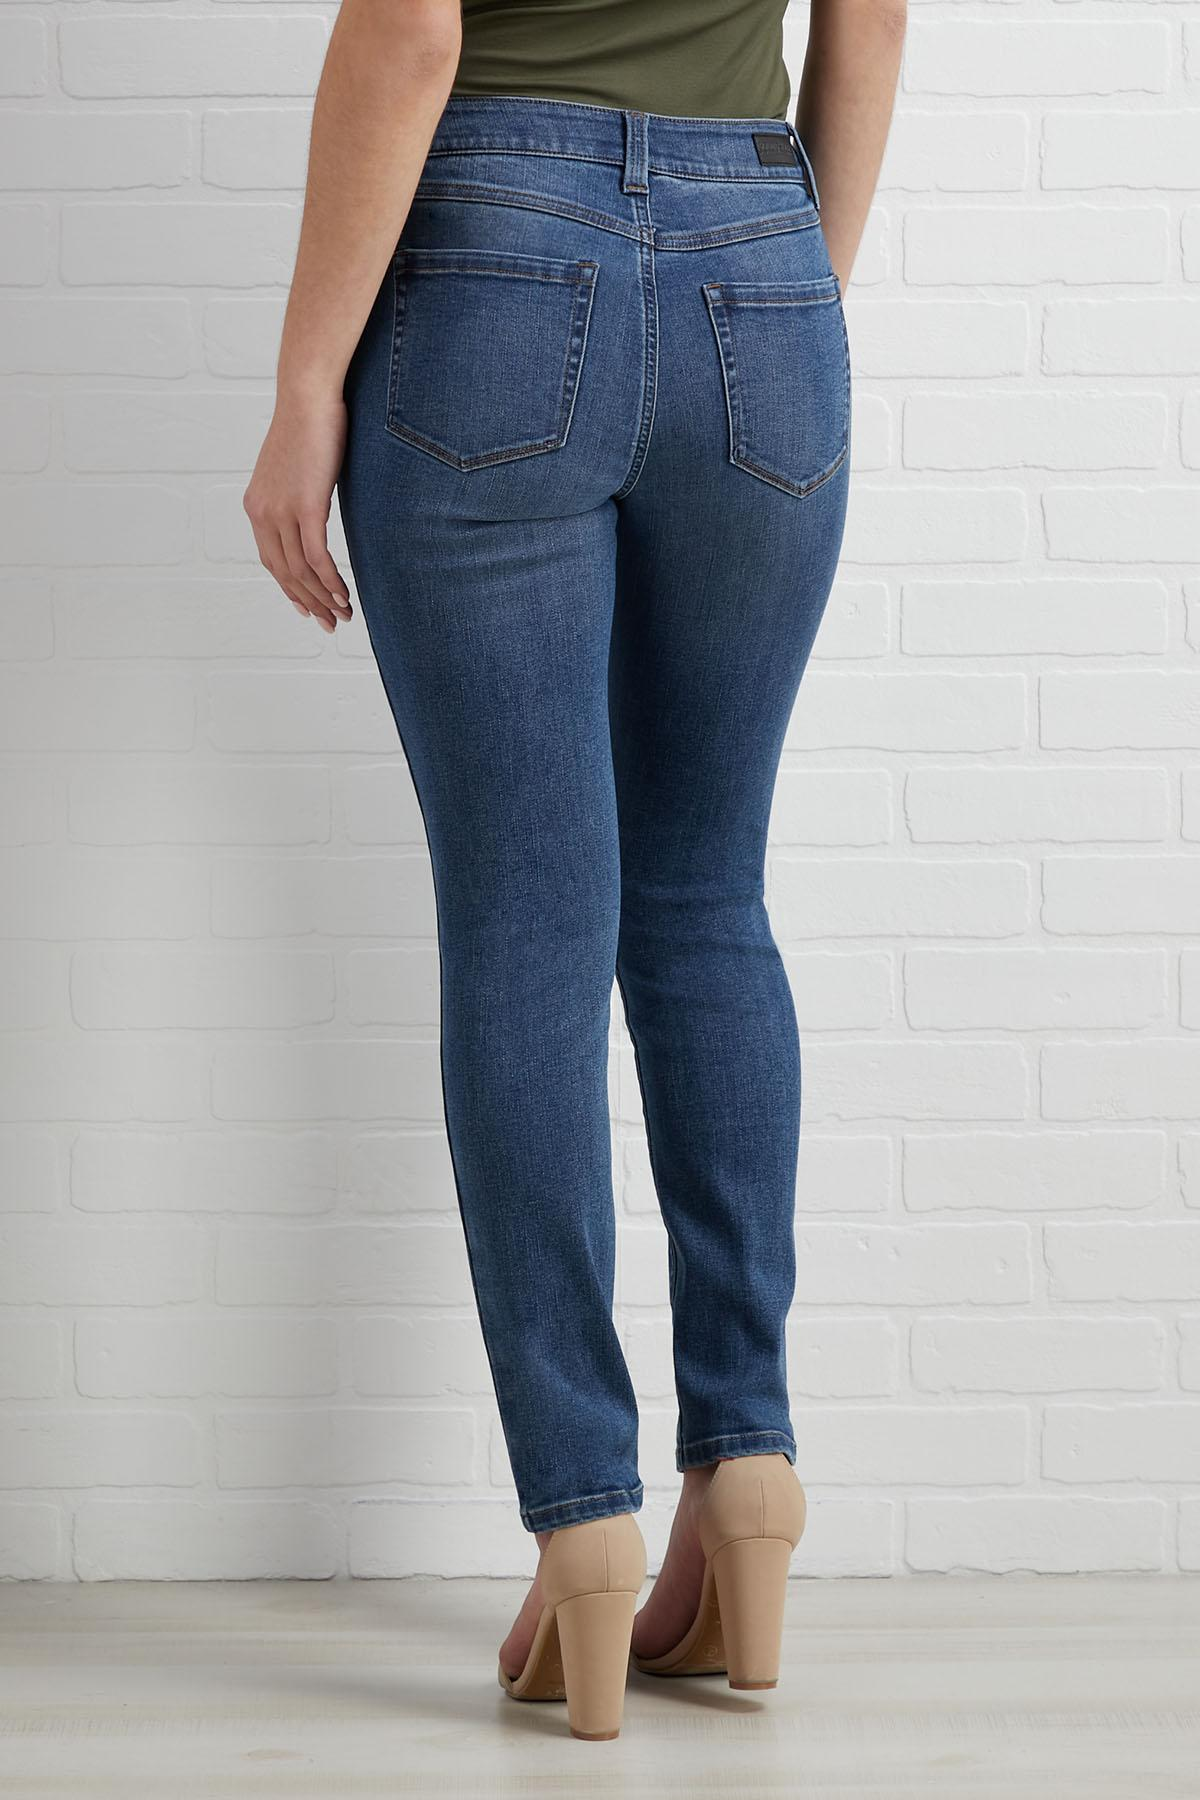 Shred Of Hope Jeans